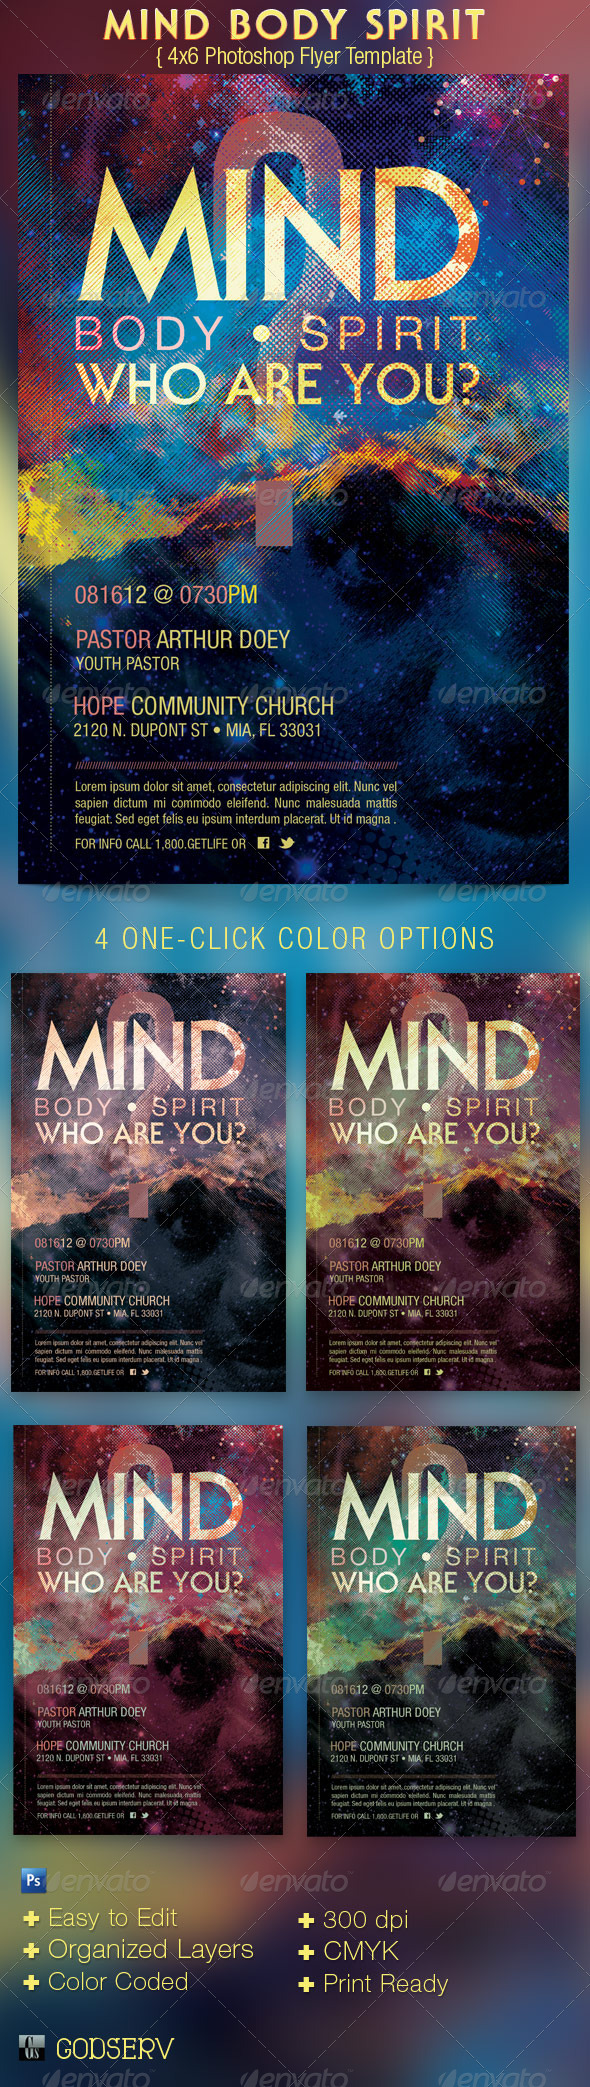 Mind Body Spirit Church Flyer Template - Church Flyers